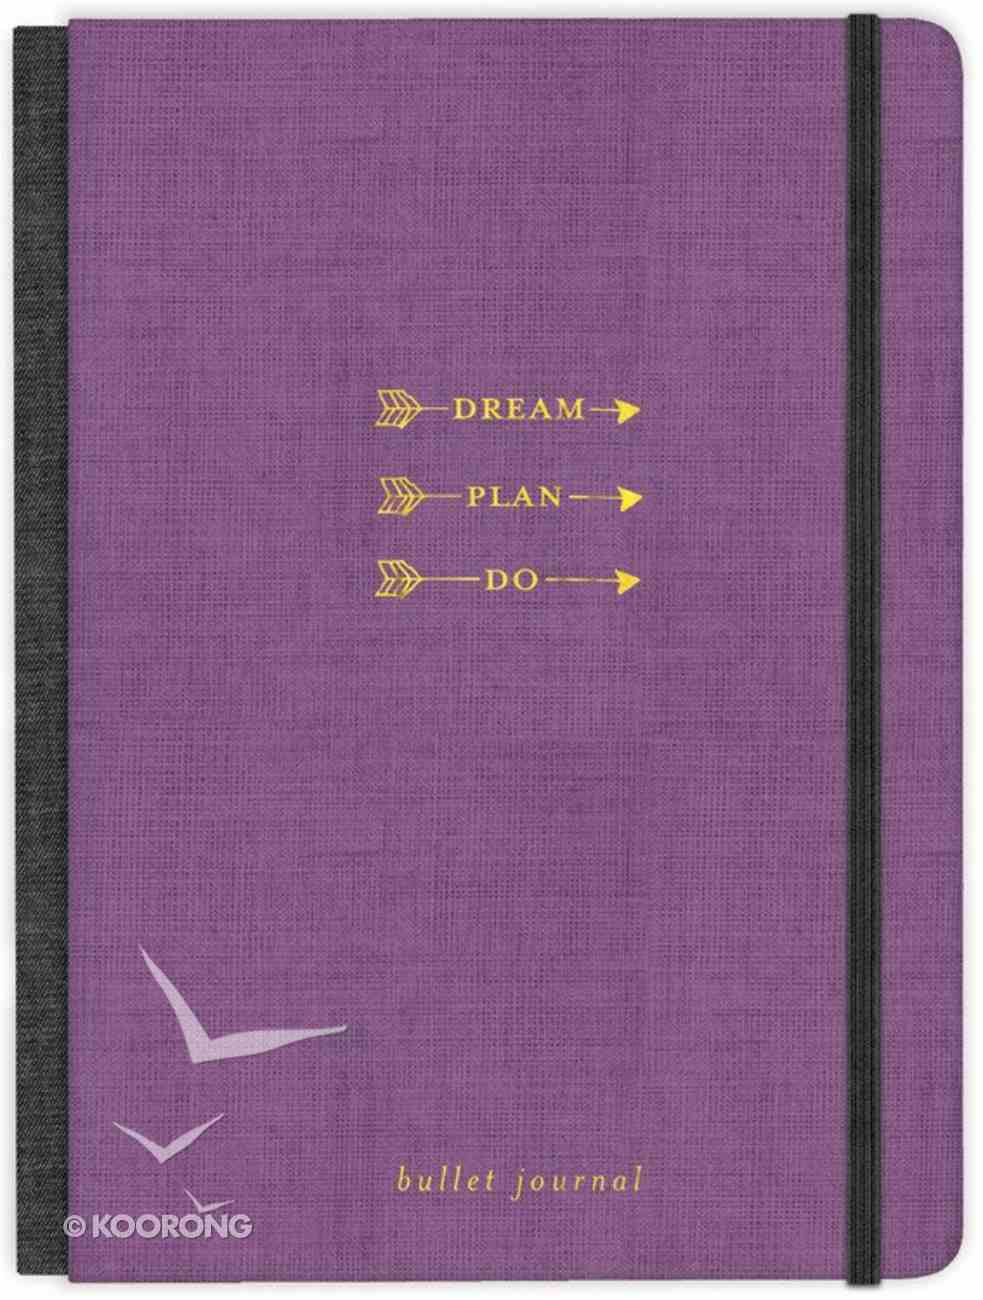 Bullet Journal: Dream. Plan. Do. - Diy Dotted Journal, Purple With Elastic Band Fabric Over Hardback